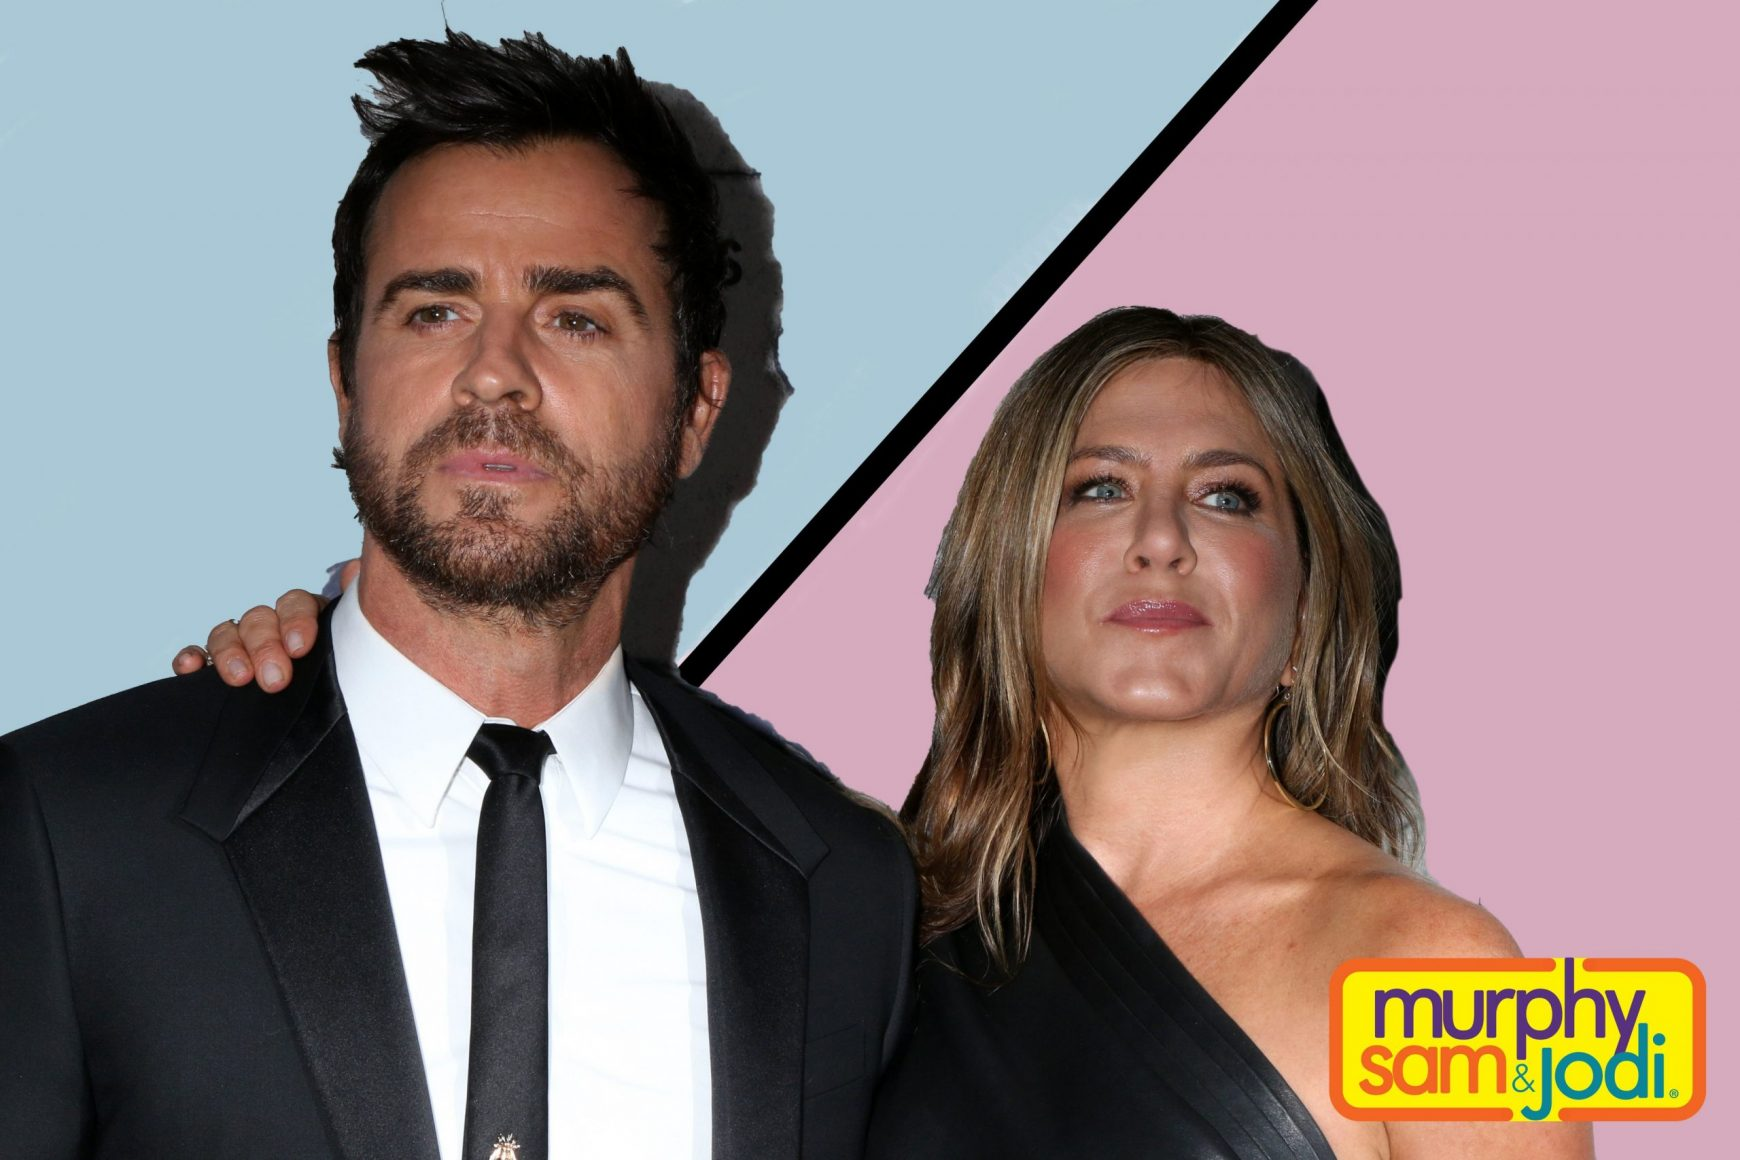 JENNIFER ANISTON AND JUSTIN THEROUX CALL IT QUITS